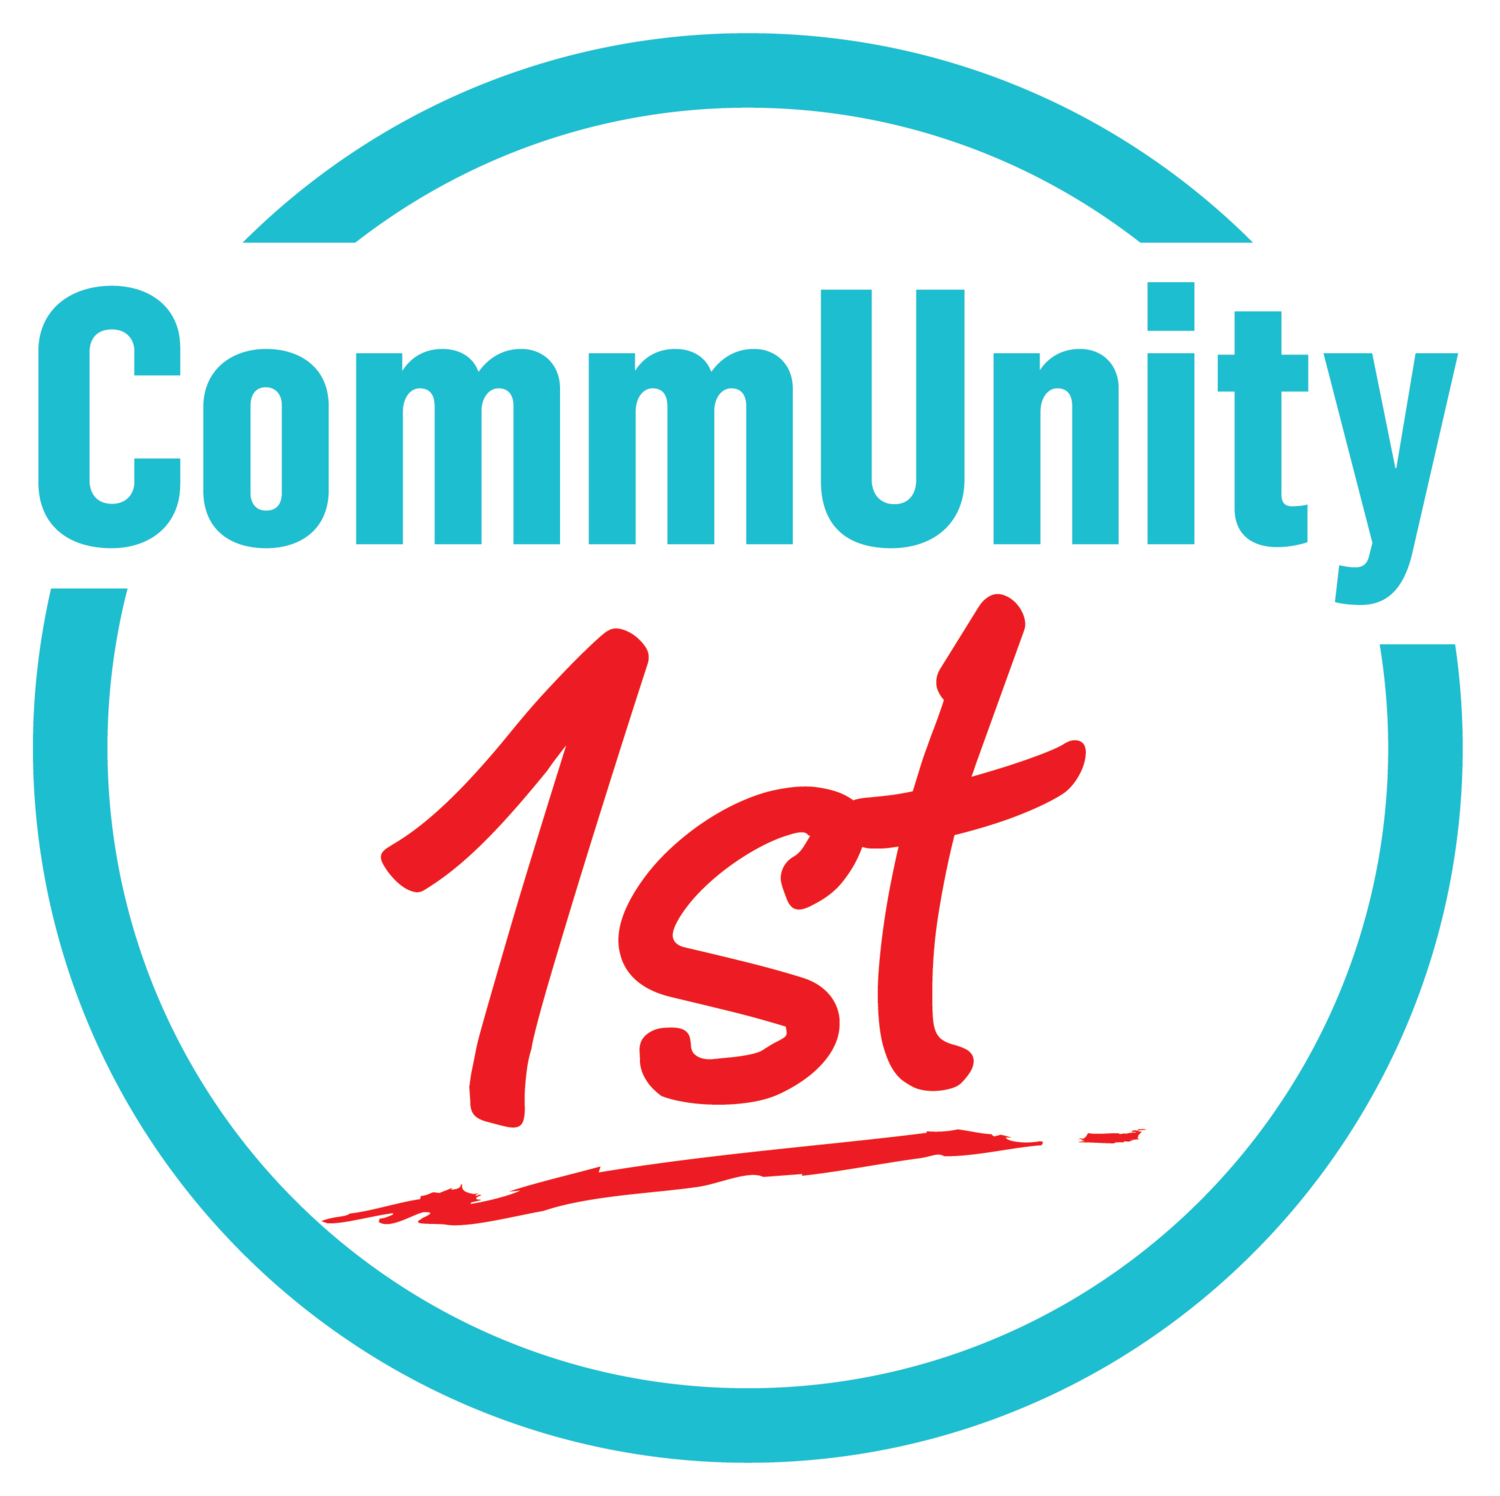 Vote 1: CommUnity 1st